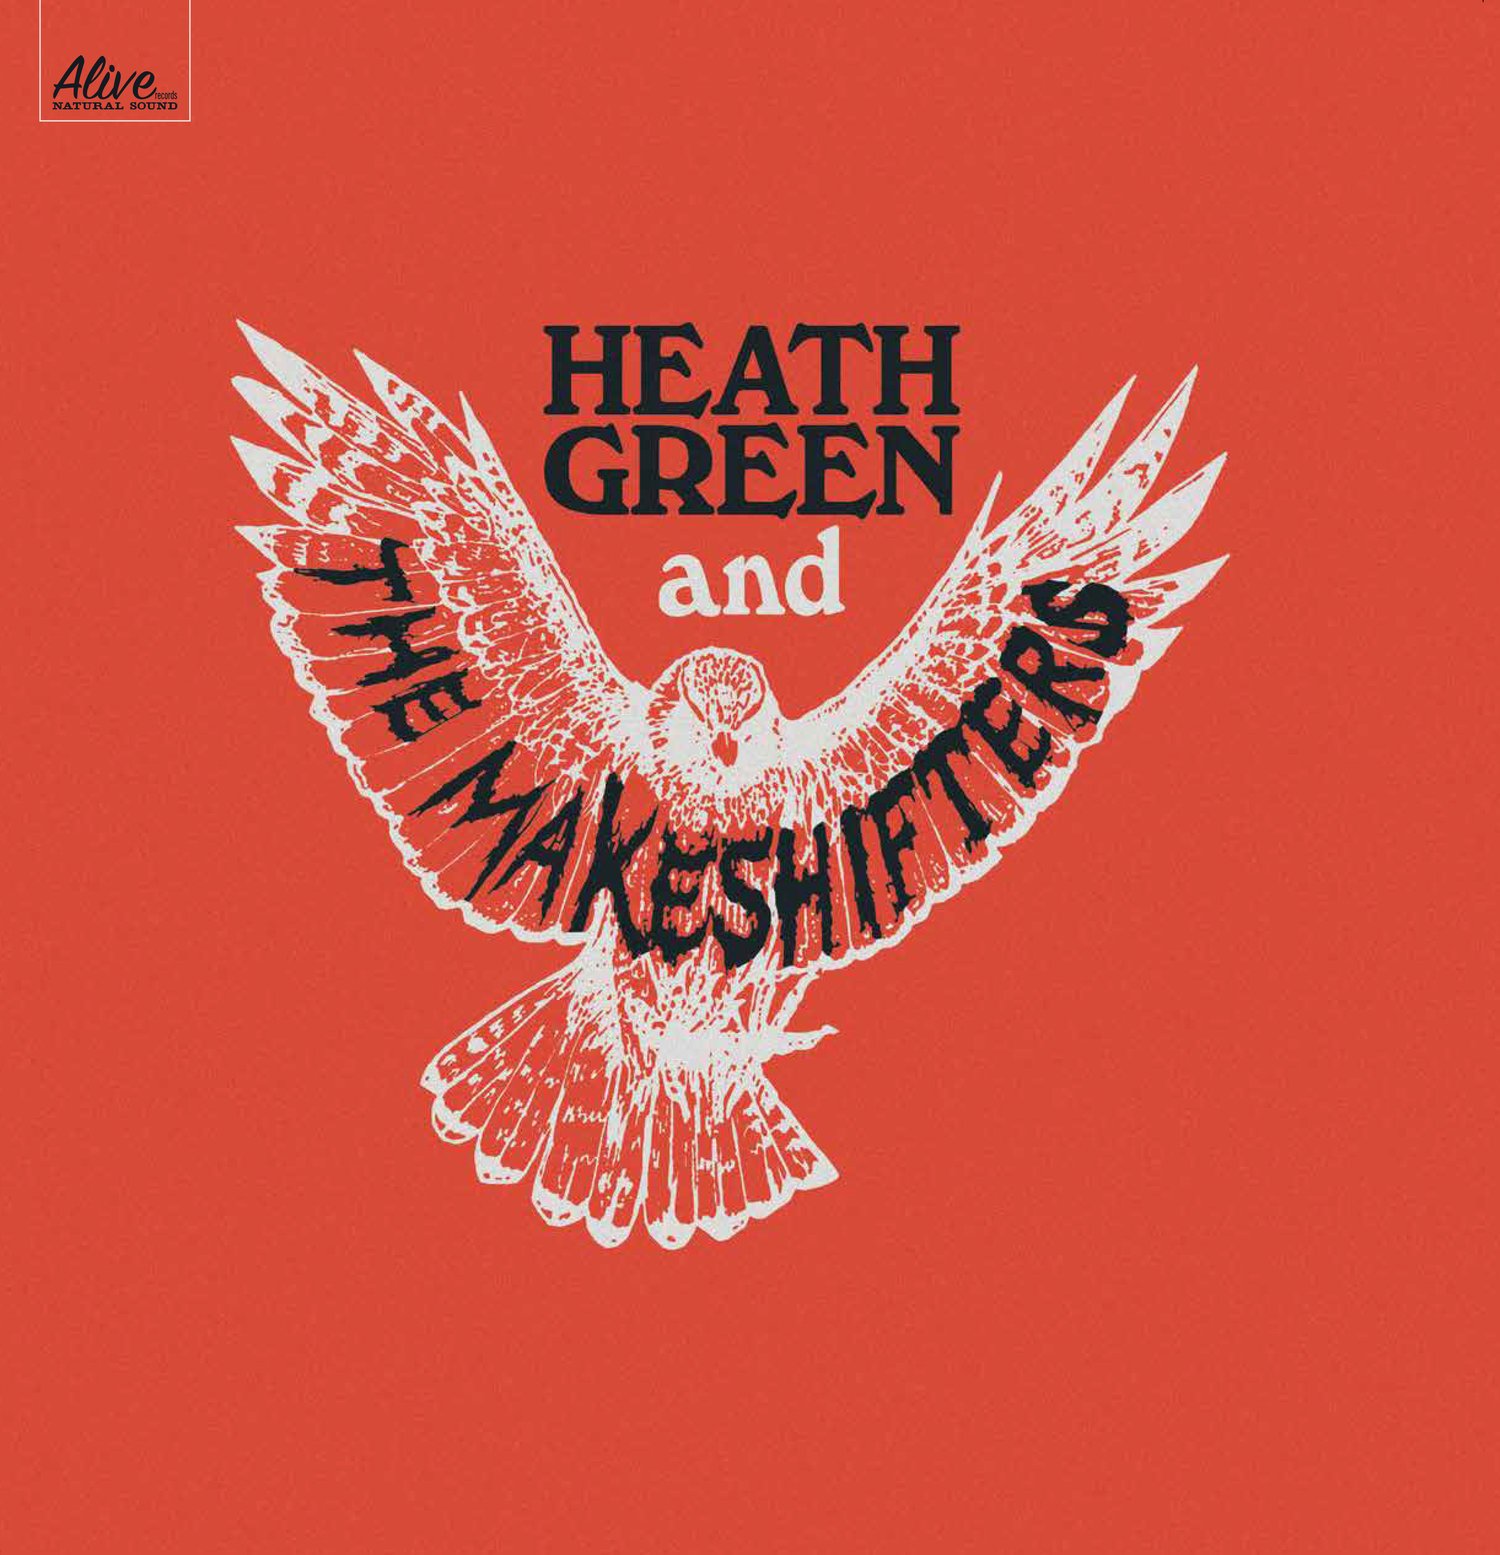 Heath Green and The Makeshifters